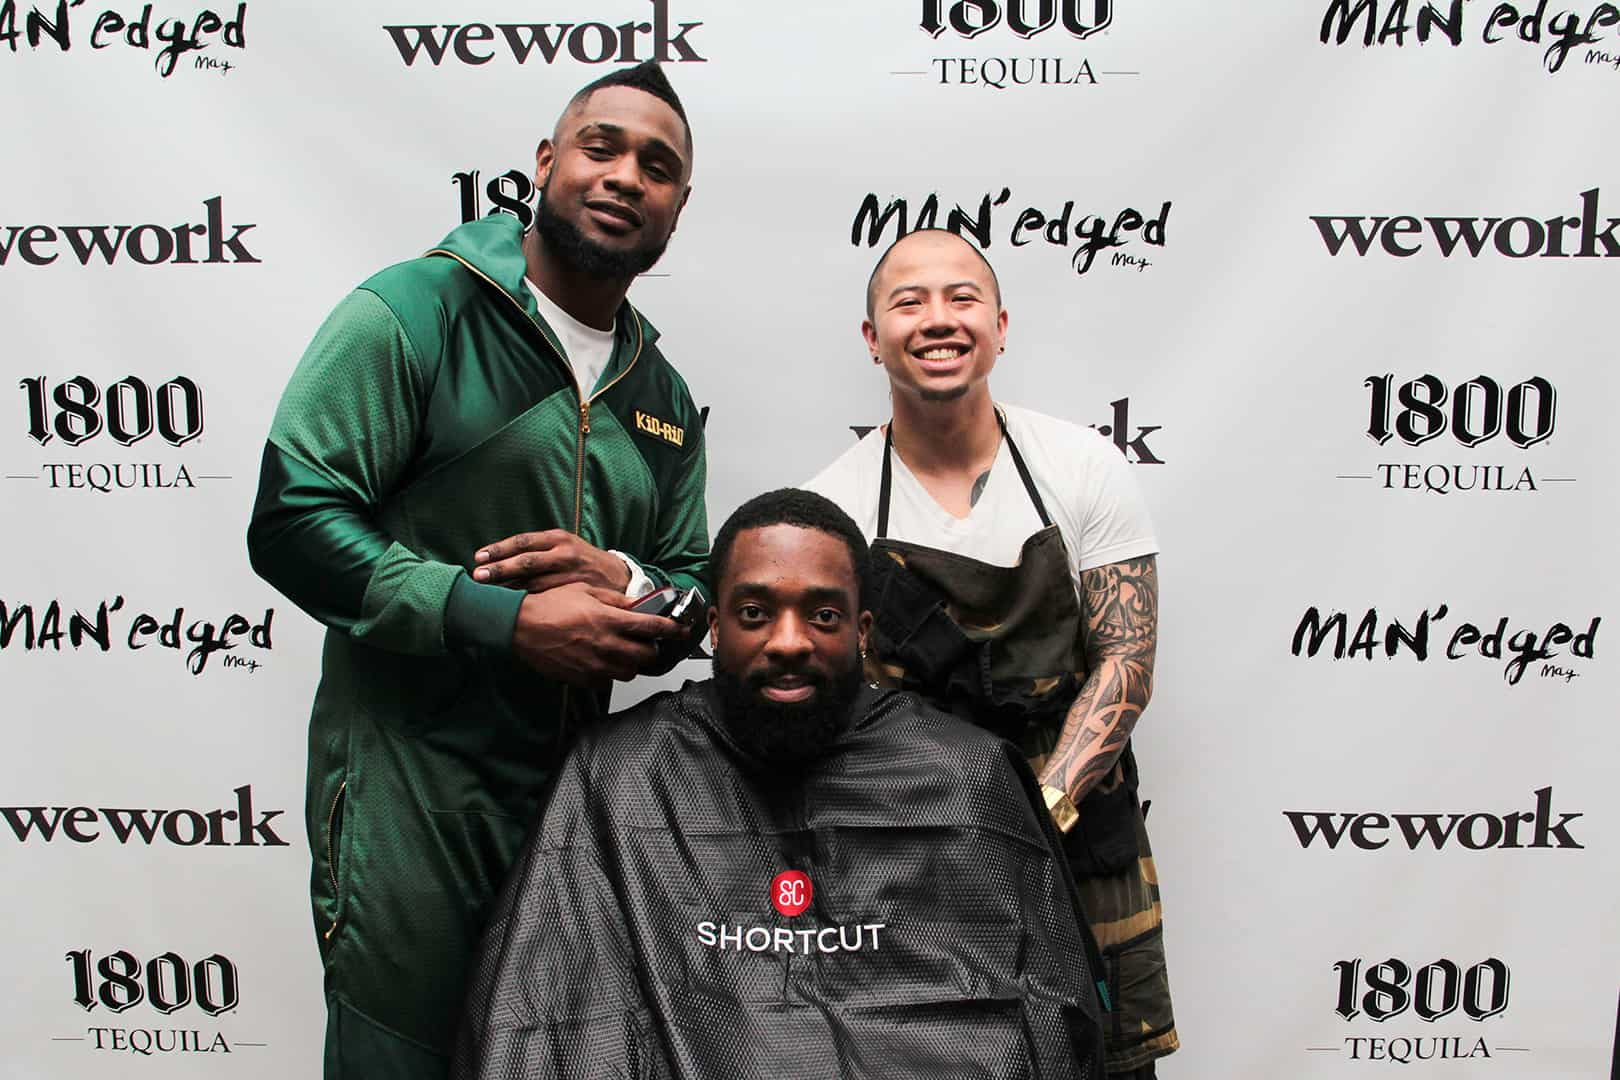 edinger apparel, martenero, control sector, 1800 tequila, woodies clothing, teddy stratford, snake bones, kid rid, stevan ridley, andre williams, giants, jets, activate, activate nyfwm, nyfwm, men's fashion week, fashion week, new york fashion week, #activatenyfwm, man'edged magazine, man'edged, MAN'EDGED, man'edged mag, man'edged magazine, MAN'EDGED Man, MAN'EDGED MAGAZINE men's gift guide, men, men's gift, gifting, gift guide, gift ideas, gifting ideas, men's gifting ideas, menswear, men's style, men's presents, Christmas, holidays, holiday gifting, men's fashion, men's style, style, fashion, new york, new york city, nyc, manhattan, Brooklyn, men's look, guide,